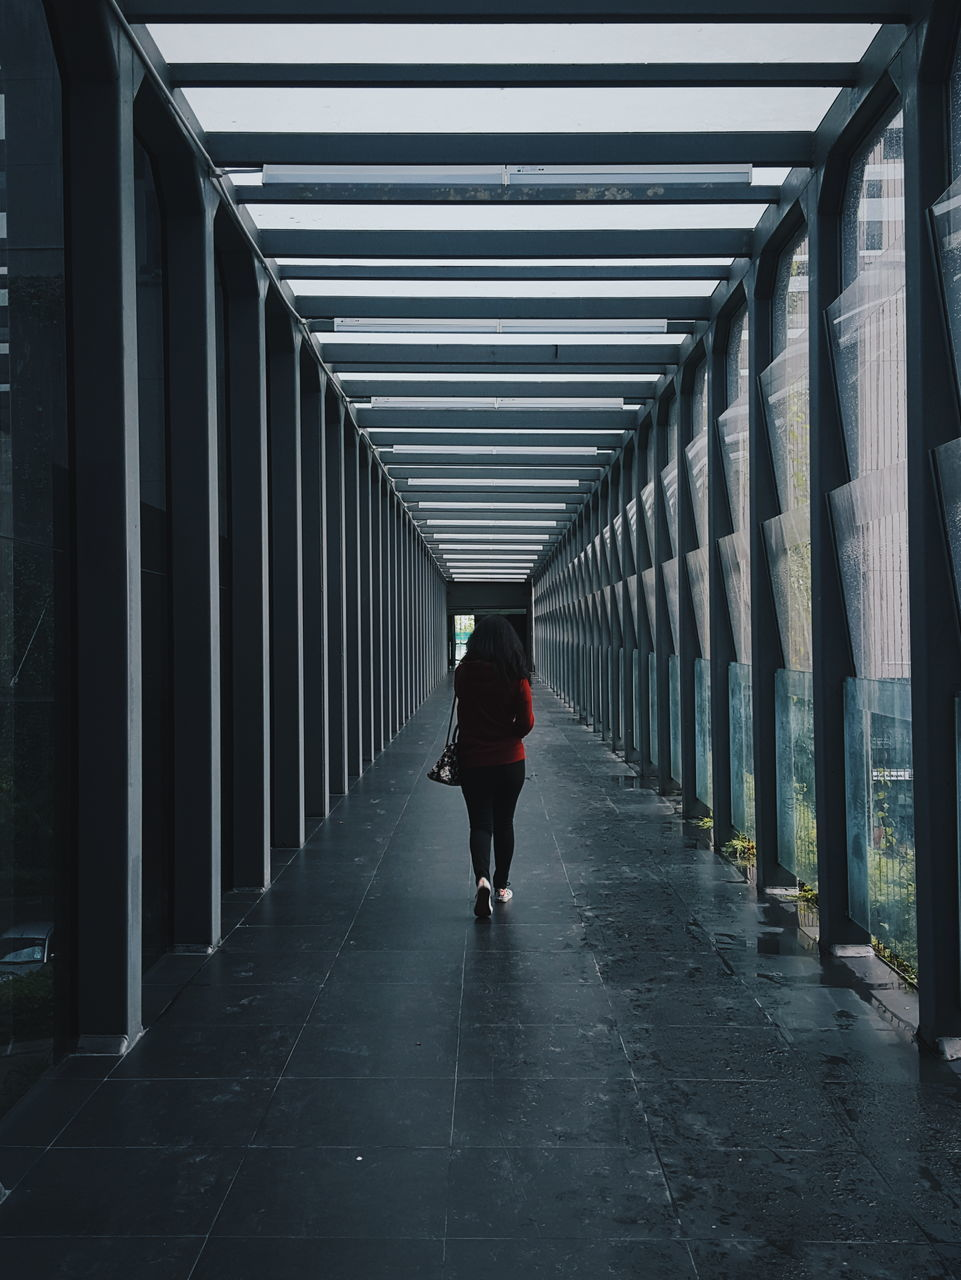 Full Length Rear View Of Woman Walking In Passage